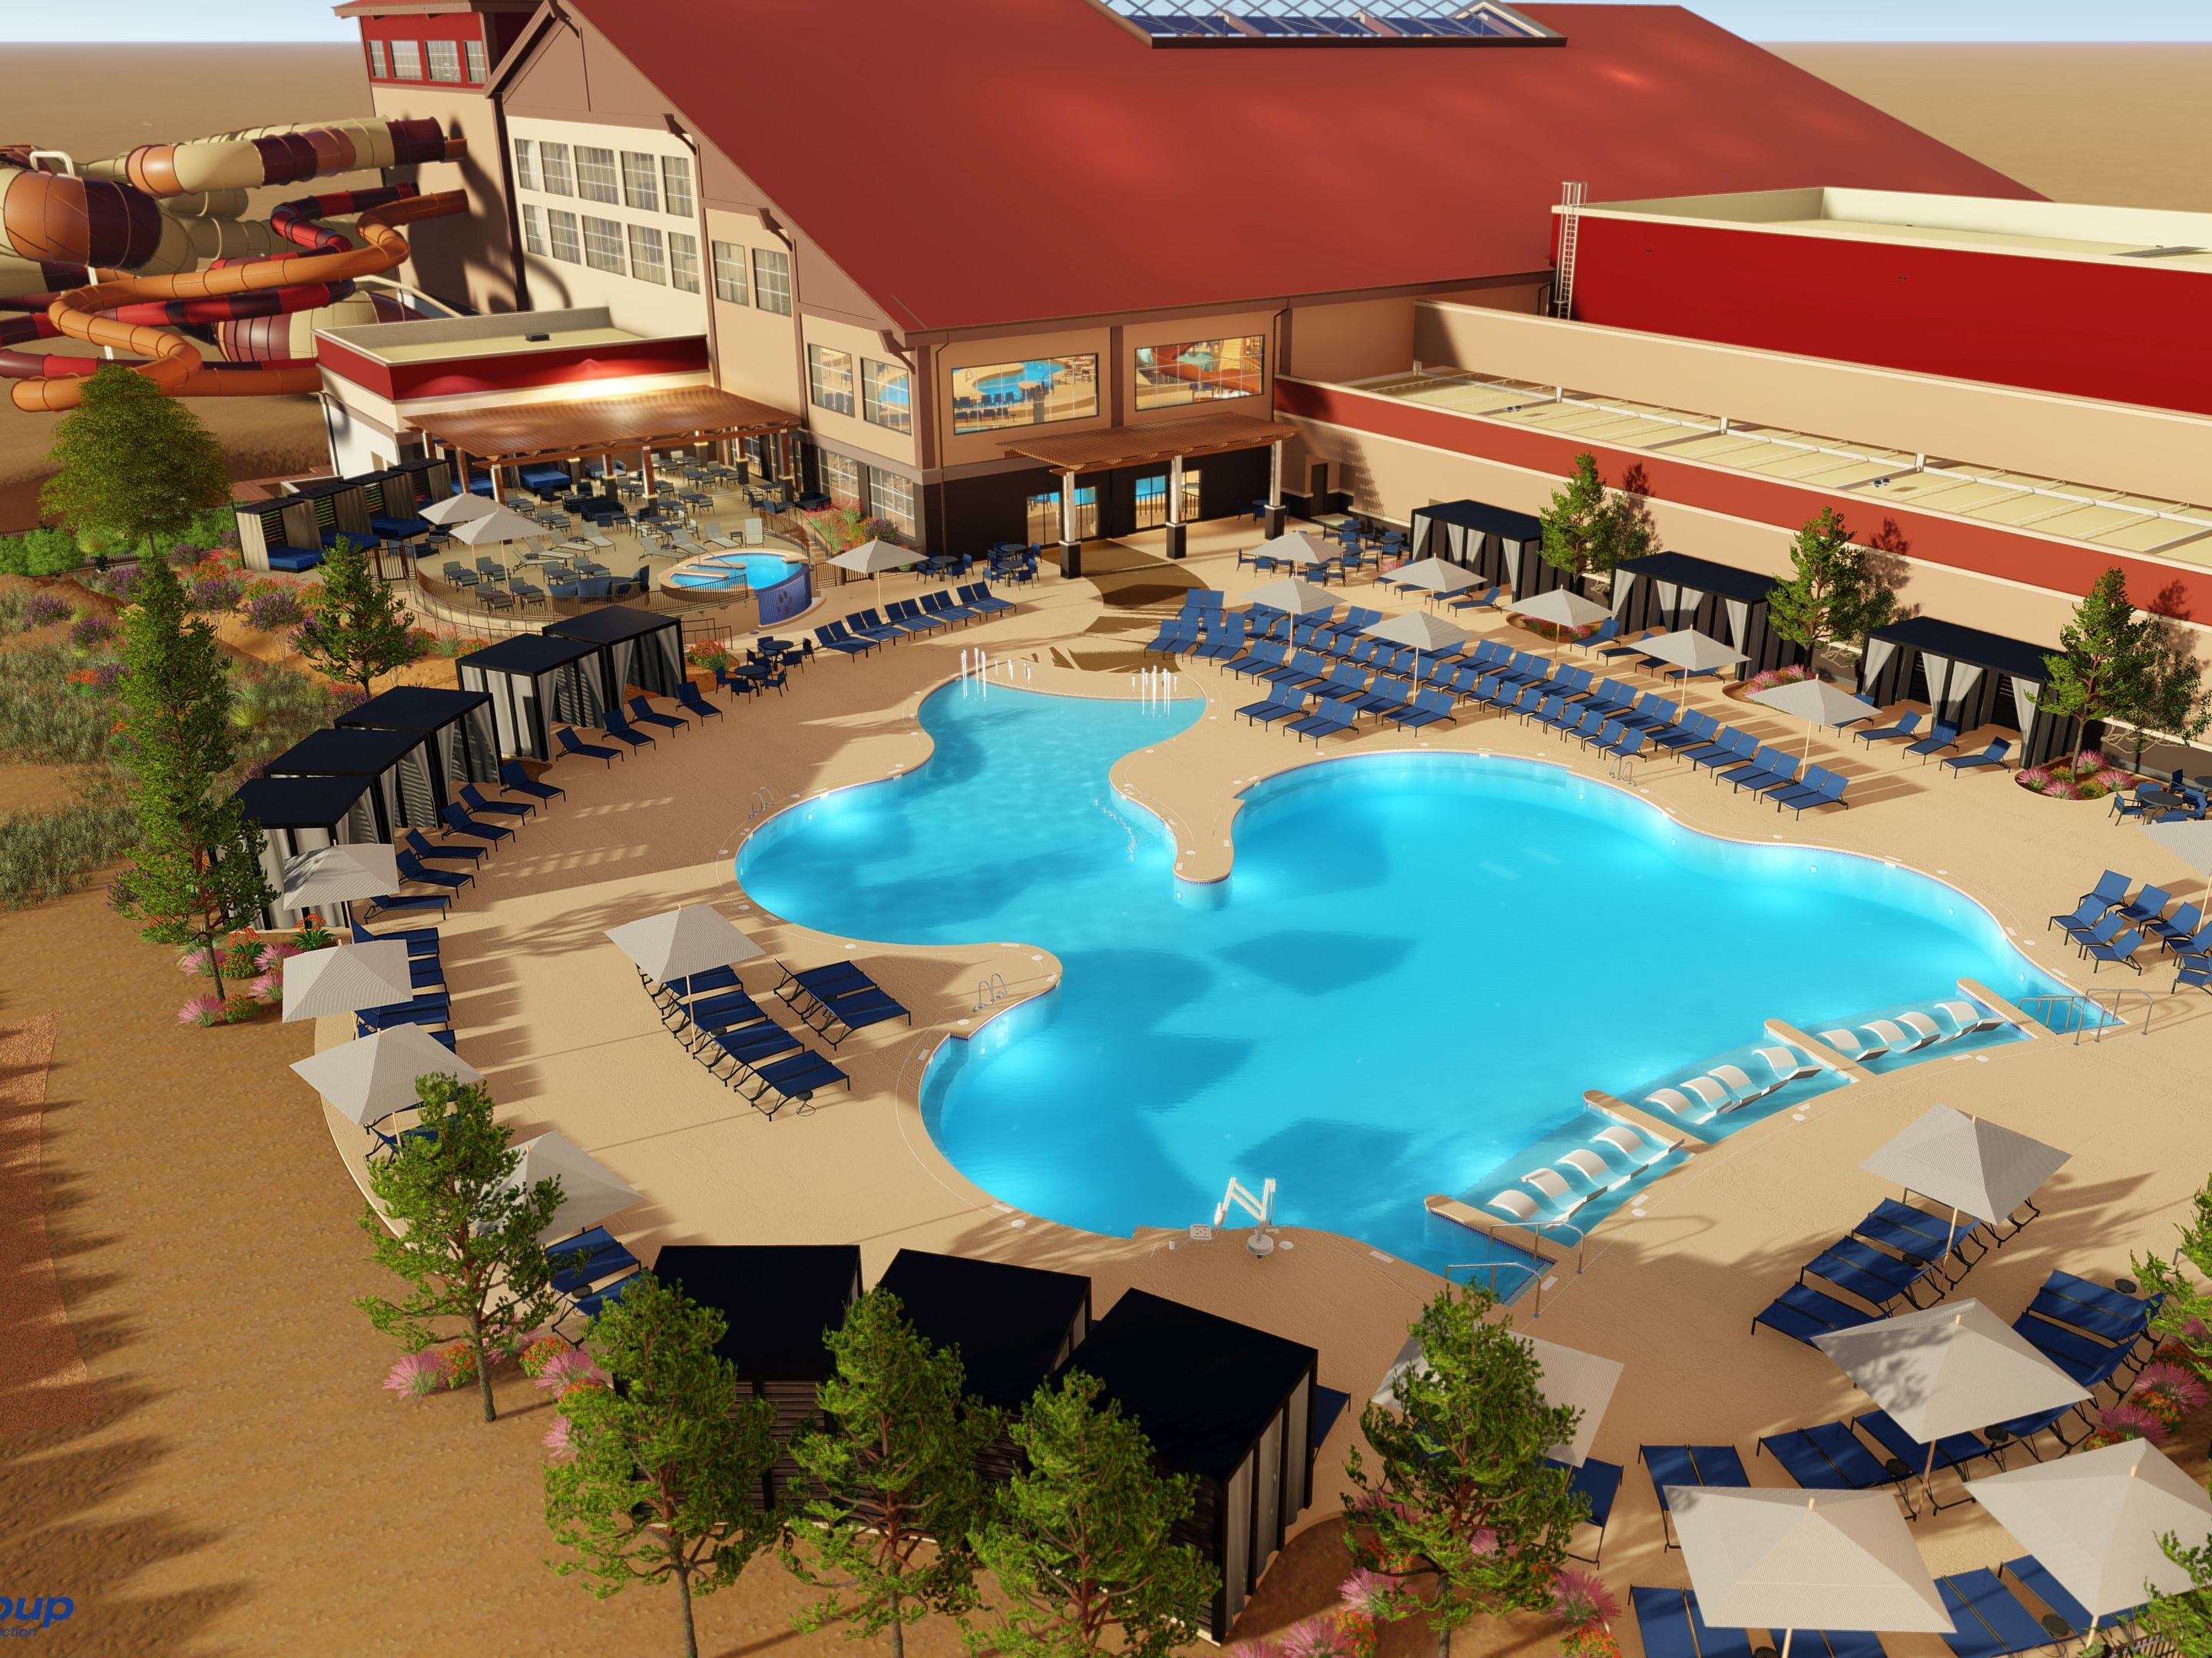 """The outdoor pool area of the Great Wolf Lodge Arizona will have cabanas. There is also a separate """"adults only"""" area with a hot tub."""